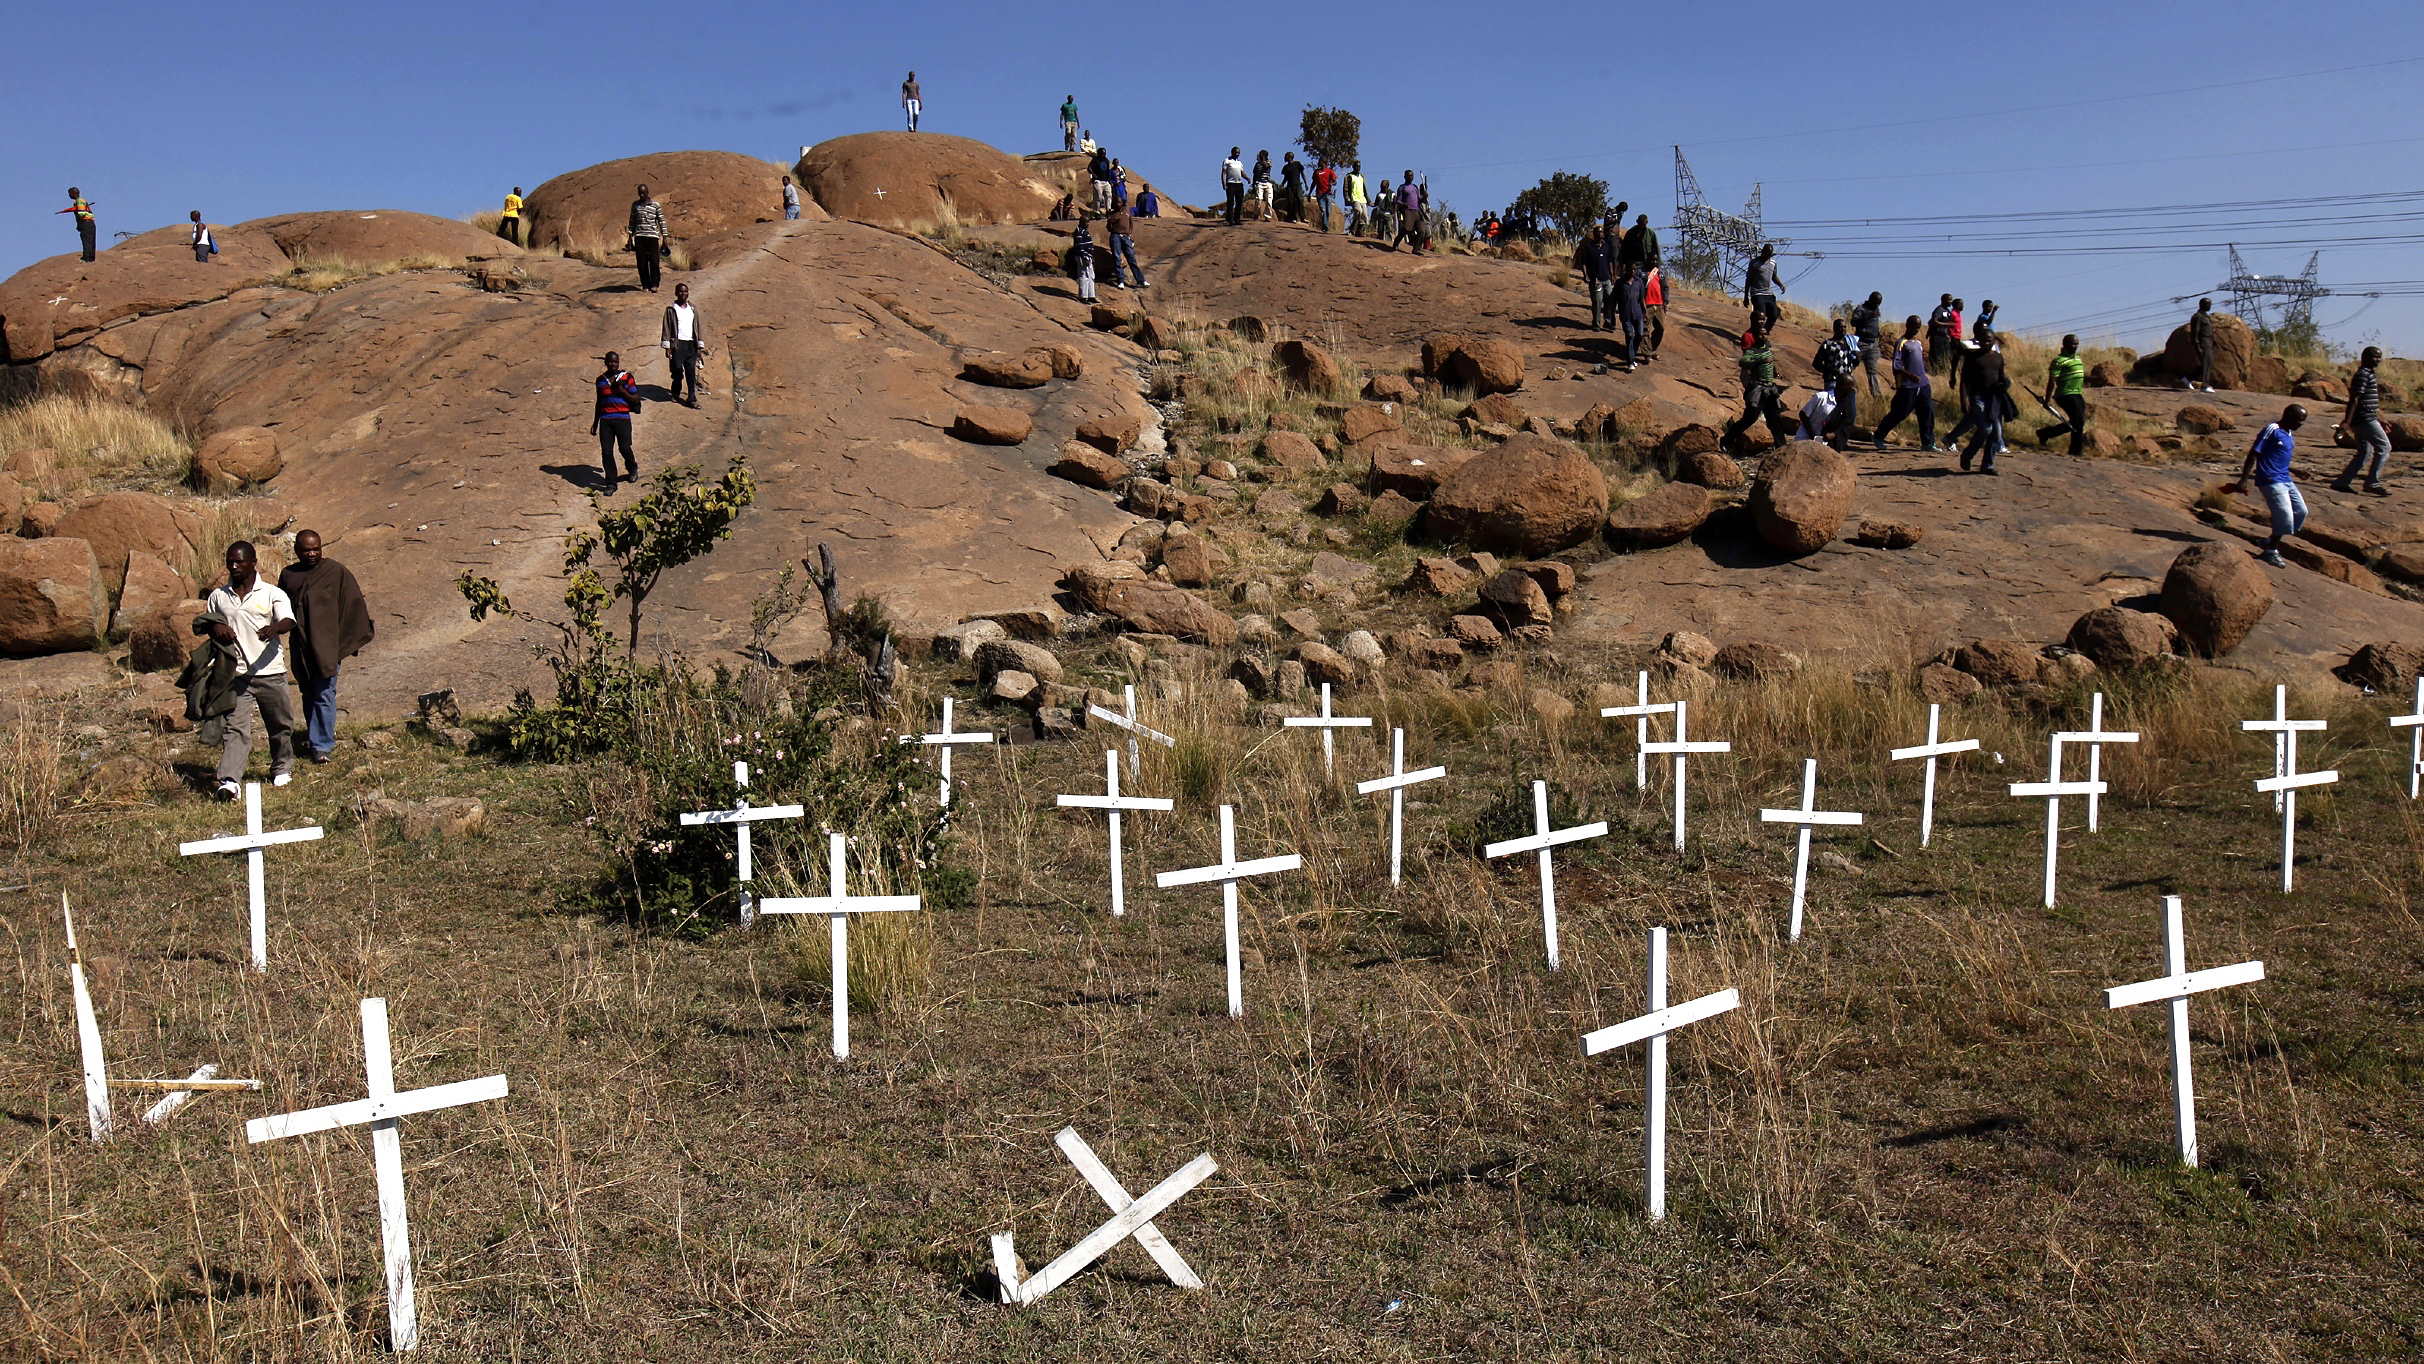 """Members of the mining community walk near crosses placed at a hill known as the """"Hill of Horror"""", where 43 miners died during clashes with police last year, during a strike at Lonmin's Marikana platinum mine in Rustenburg, 100 km (62 miles) northwest of Johannesburg, May 14, 2013. South African workers of world No. 3 platinum producer Lonmin launched a wildcat strike on Tuesday, halting all of the company's mine operations and reigniting fears of deadly unrest that rocked the industry last year. The platinum belt towns of Rustenburg and Marikana, which saw violent strikes at Lonmin and other platinum producers last year, are a flashpoint of labour strife with tensions running high over looming job cuts and wage talks. REUTERS/Siphiwe Sibeko (SOUTH AFRICA - Tags: POLITICS CIVIL UNREST BUSINESS) - RTXZLW0"""